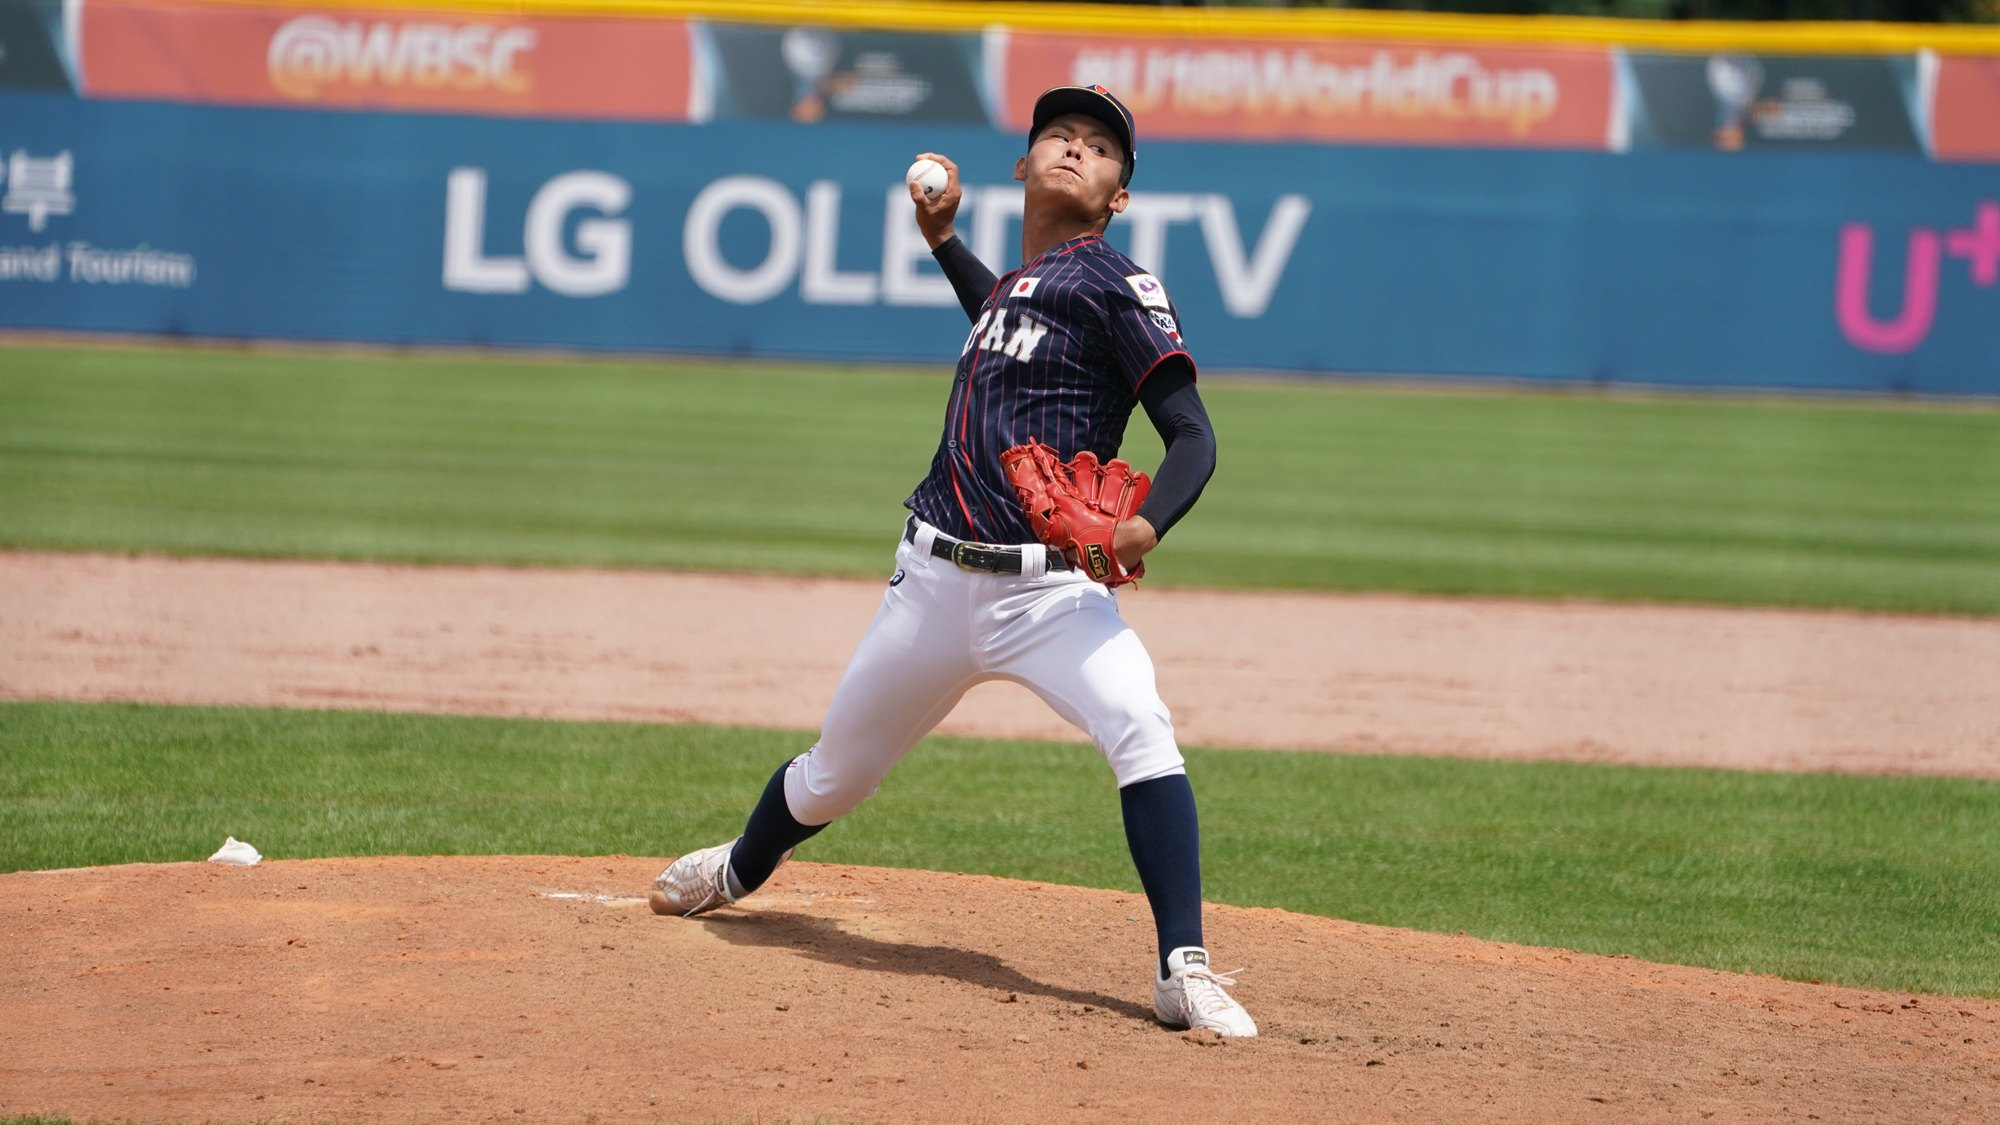 Sota Asada pitched five innings of no-hit ball